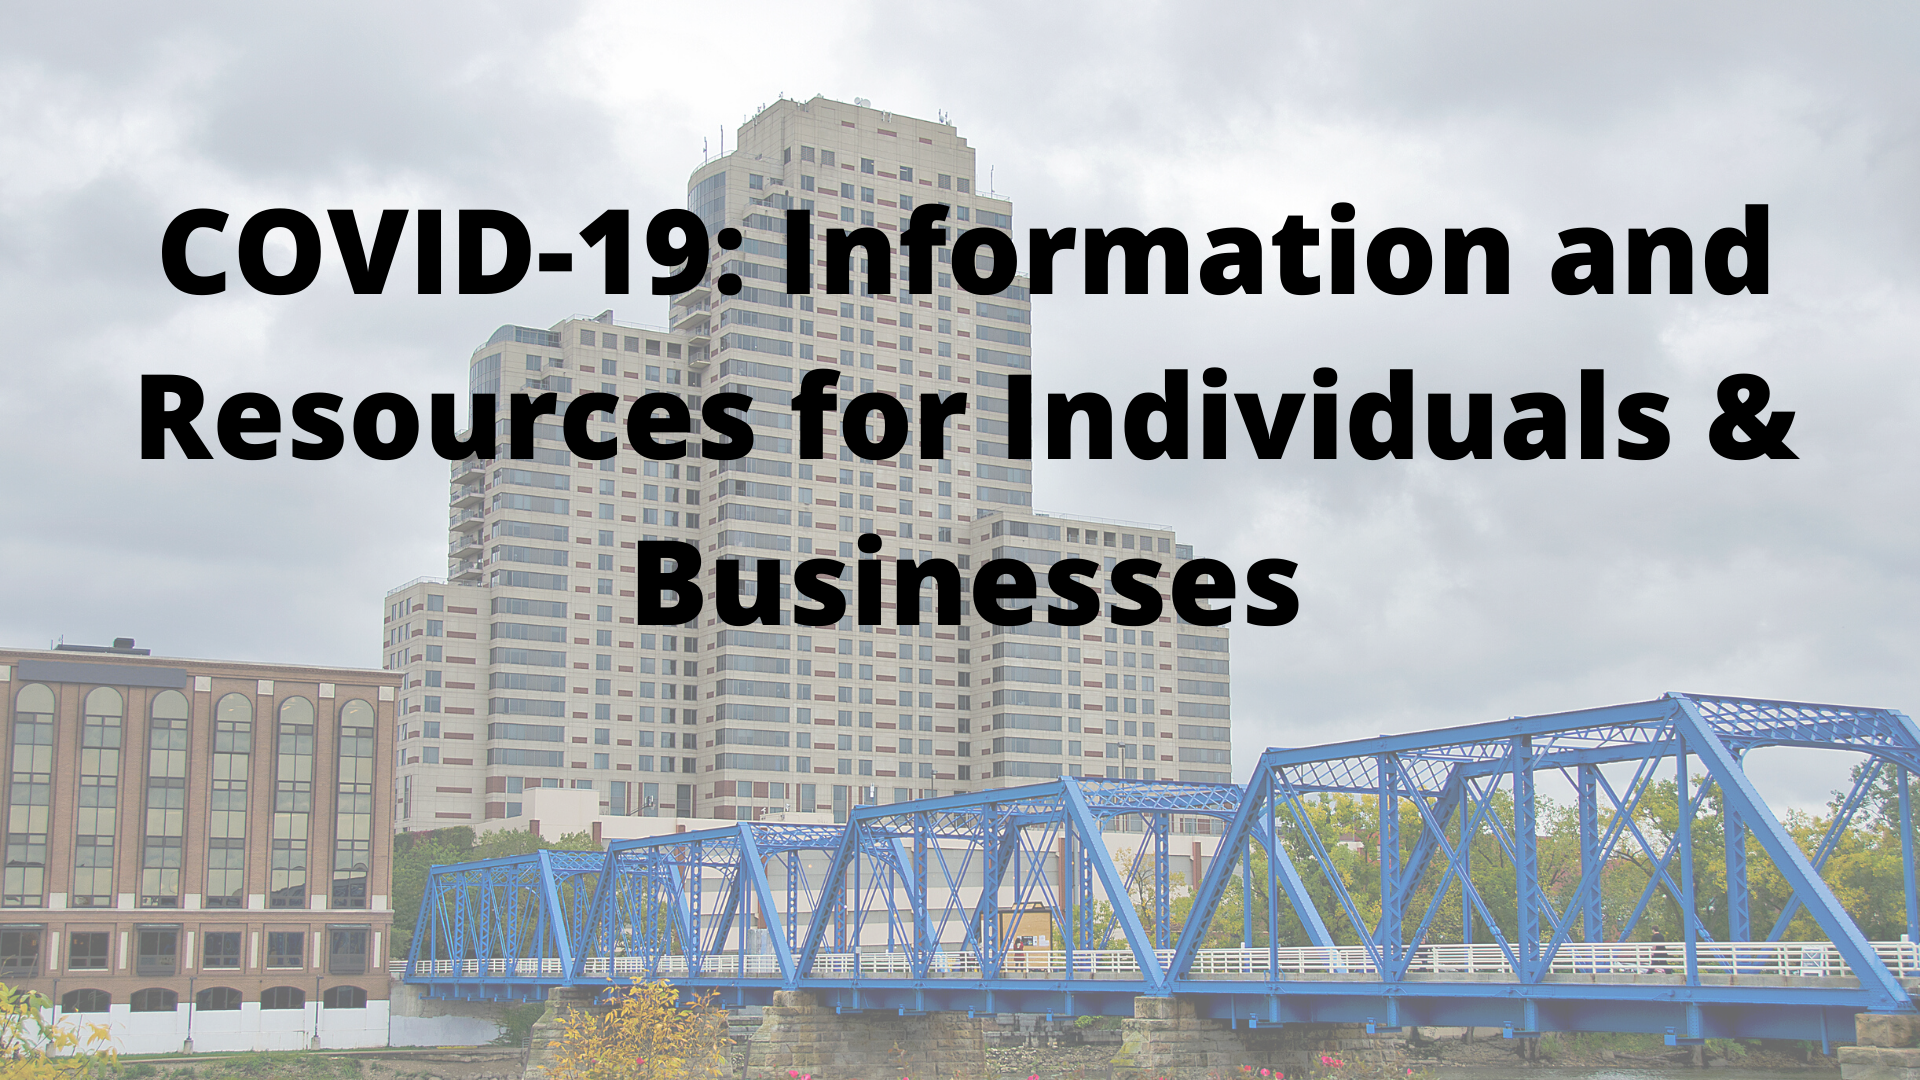 COVID-19_ Information and Resources for Individuals & Businesses